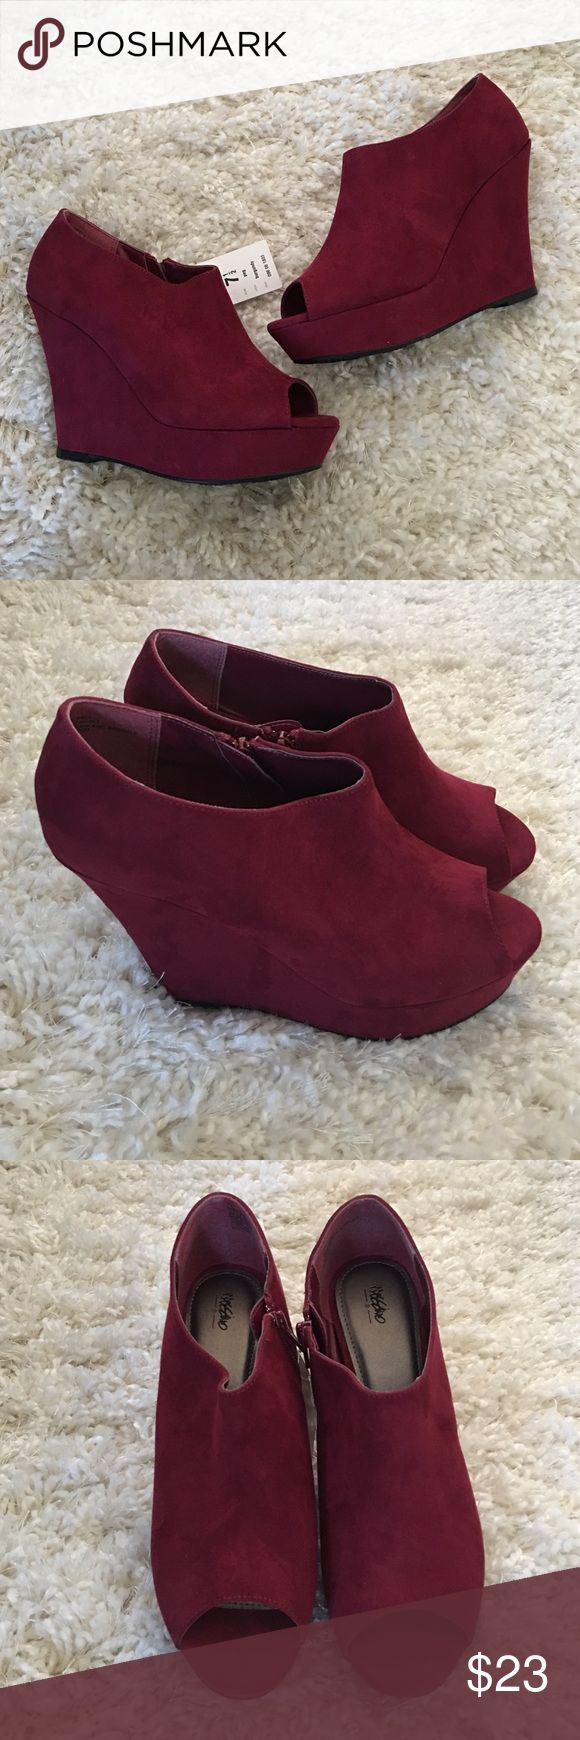 "Mossimo-Peep Toe Wedges-Burgundy-Size 7.5 New with tags. Mossimo brand. Beautiful burgundy color perfect for fall. Faux suede peep toe wedges with approx 4.5"" heel. Size 7.5 ***Sorry, No Trades*** Mossimo Supply Co. Shoes Wedges"